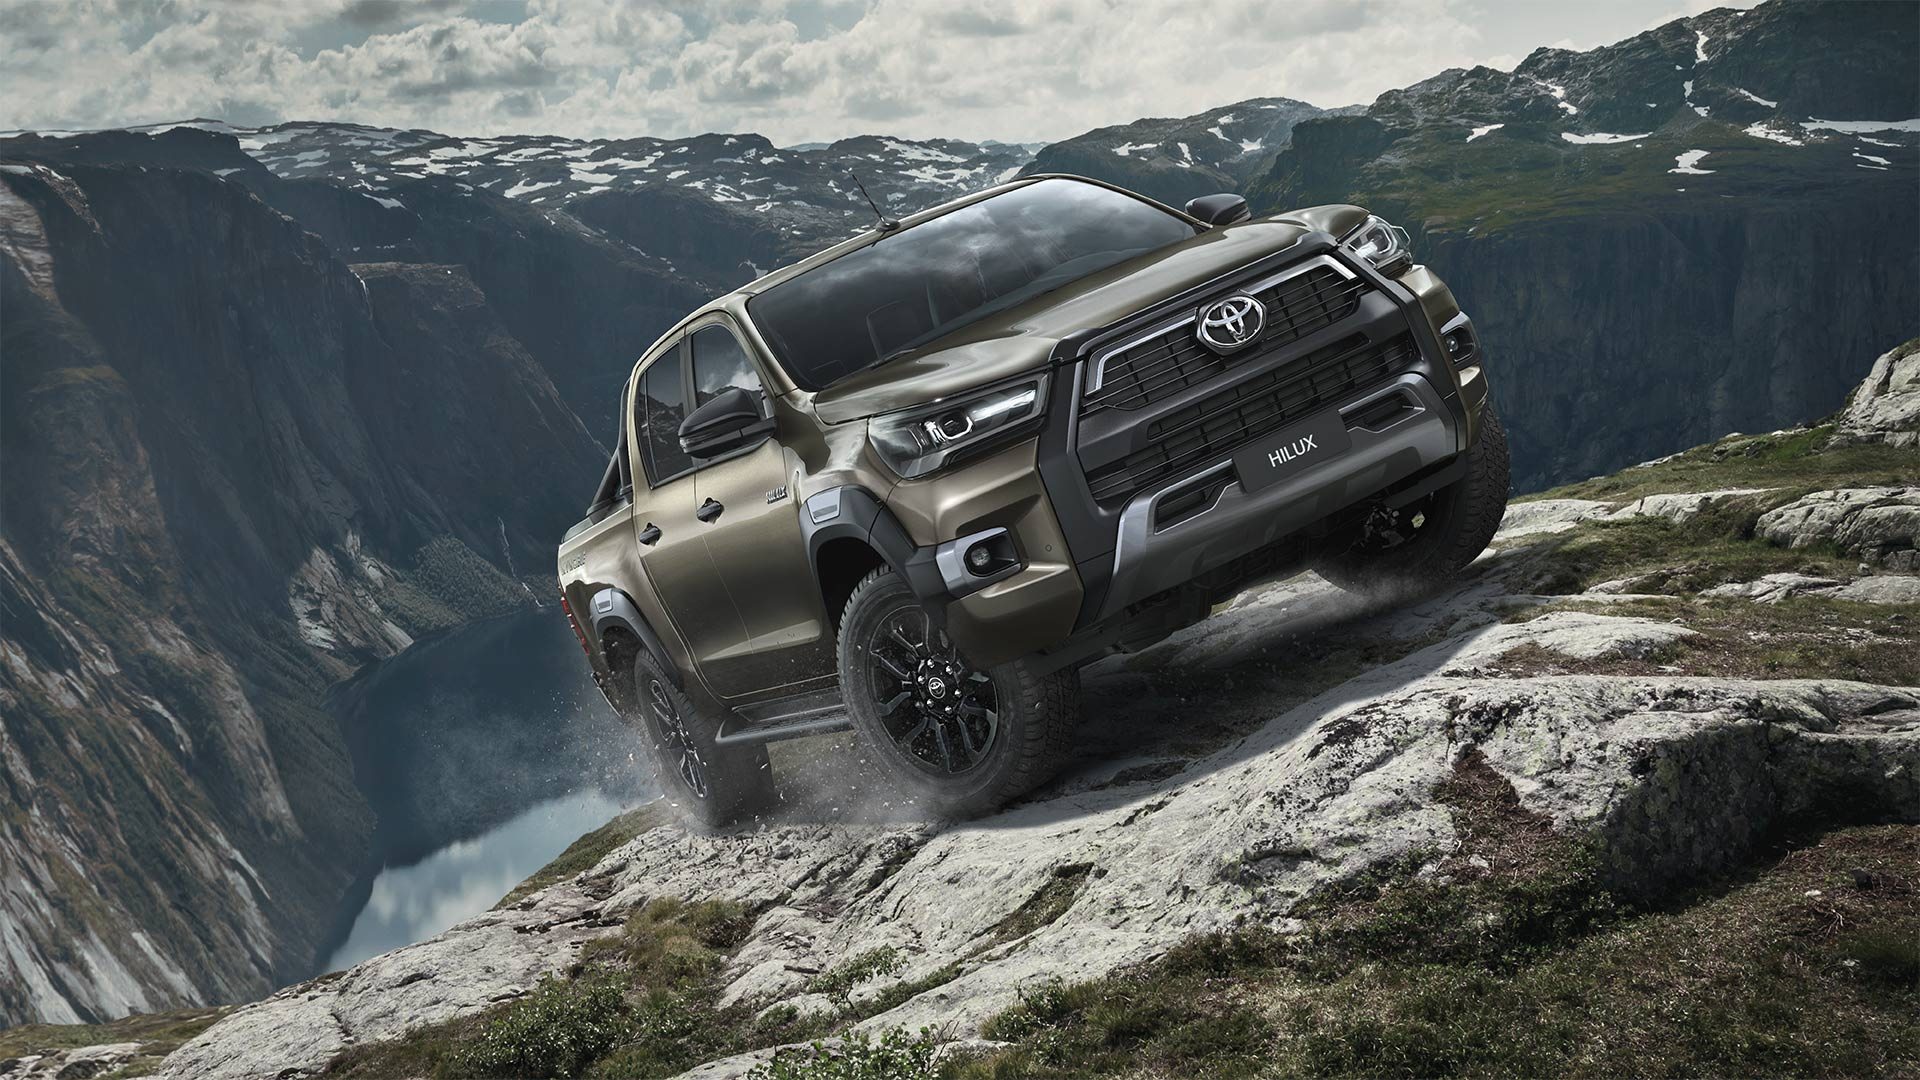 Toyota's new Hilux makes powerful impression